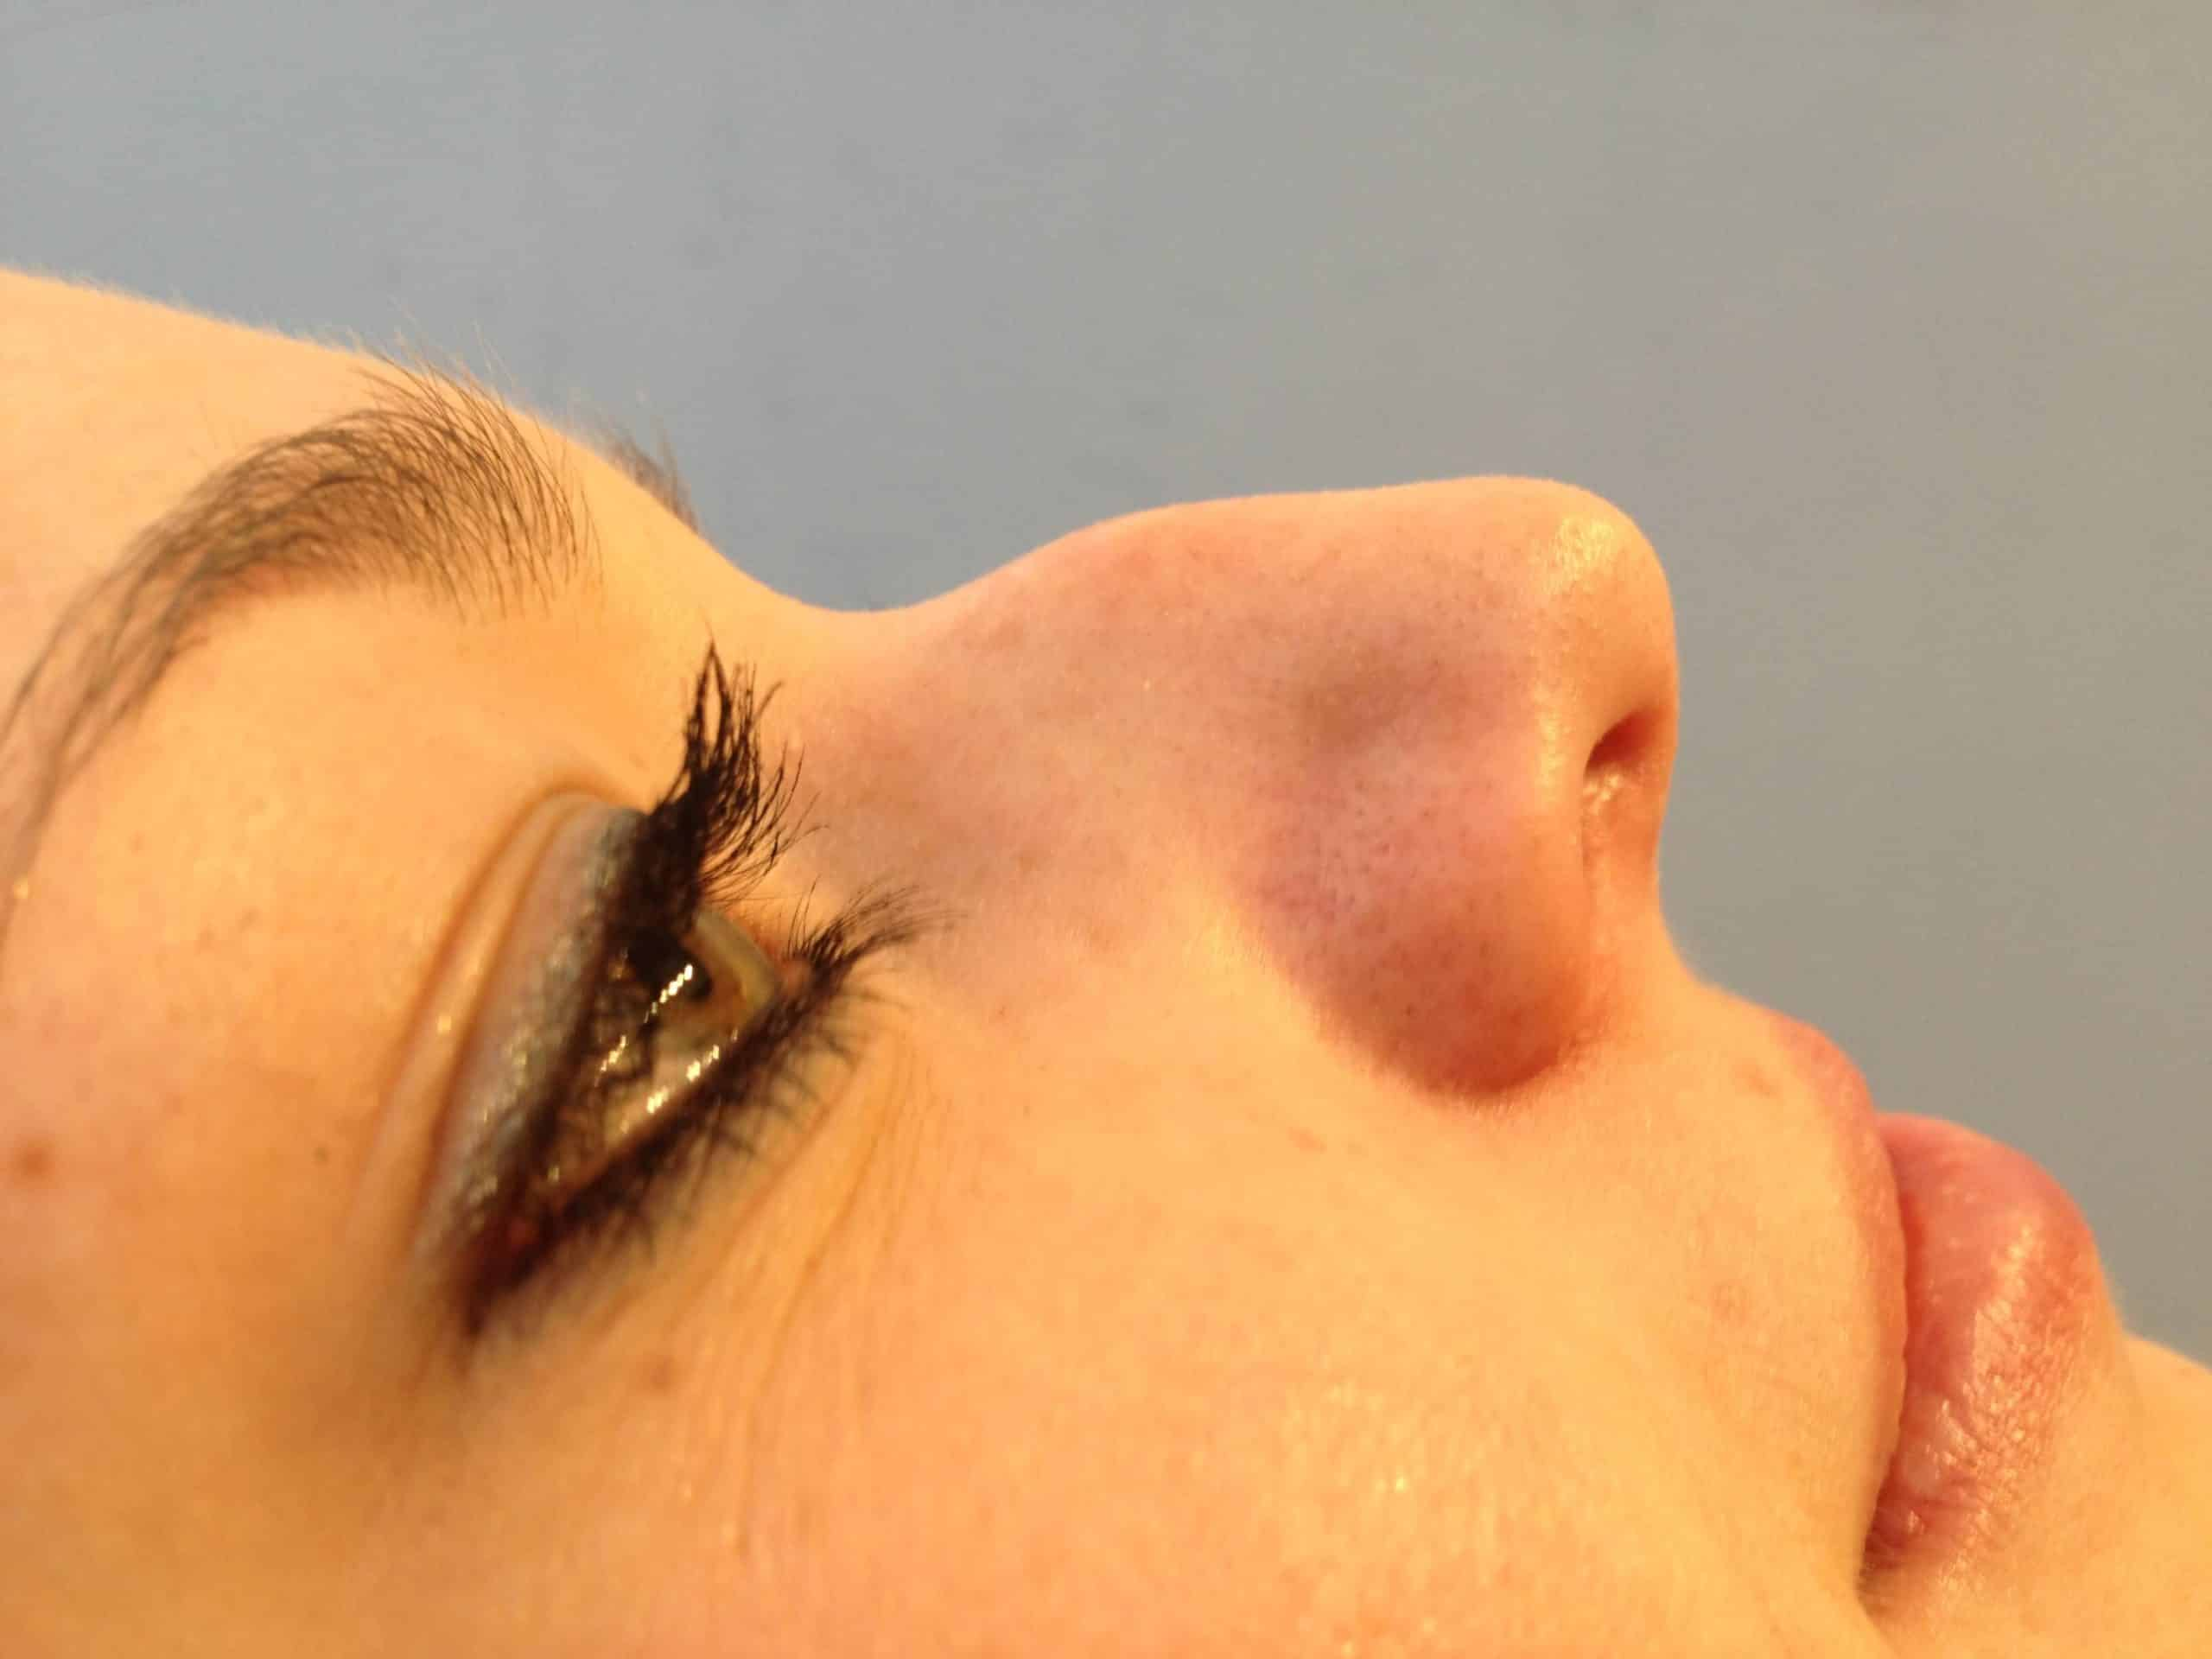 5 Minute Nose Job - Before and After Gallery – Photo 8